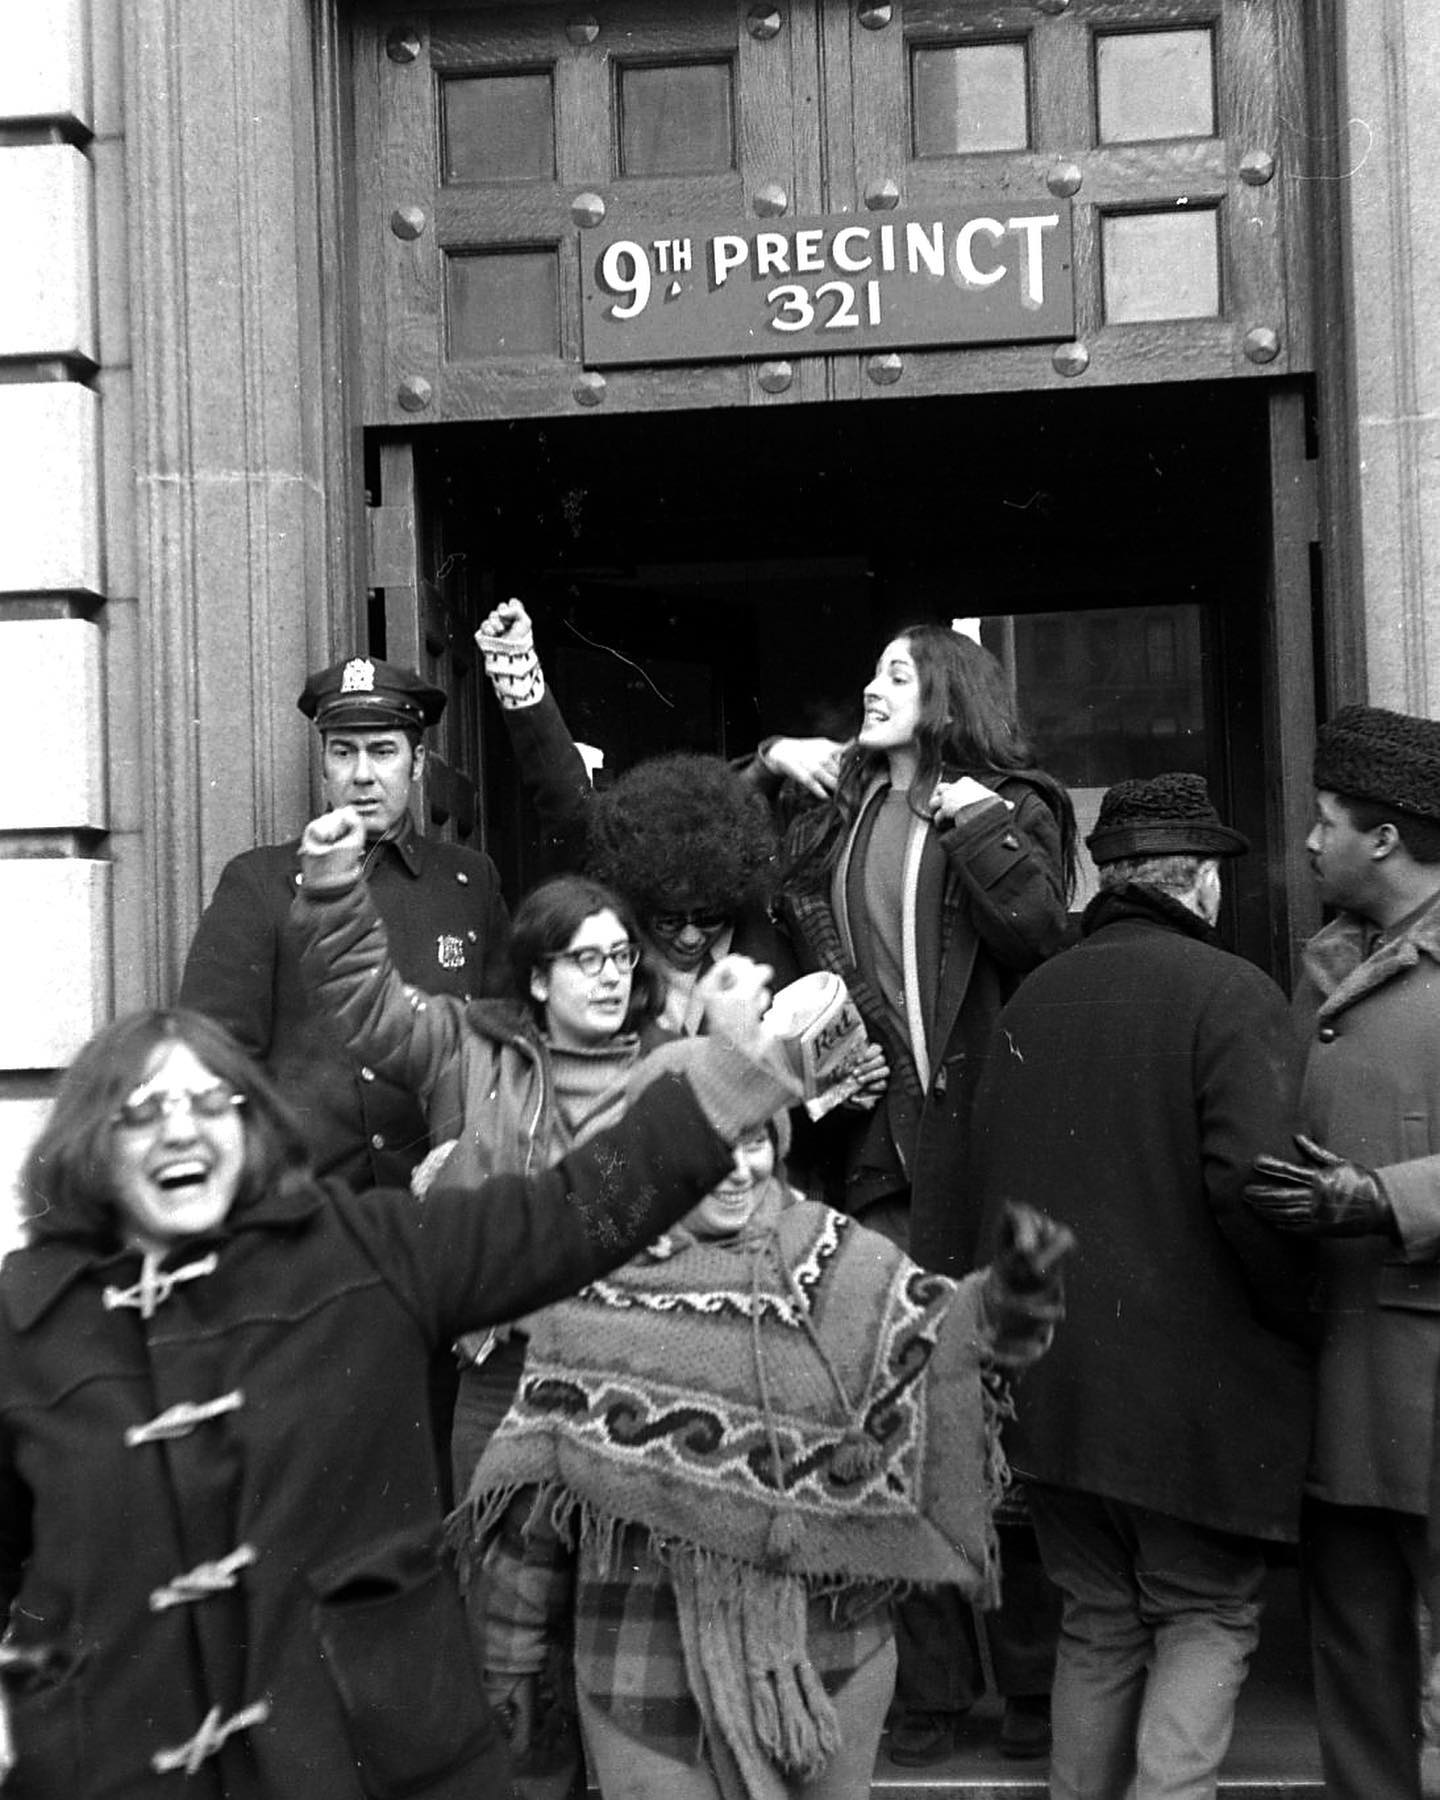 #Onthisday in 1971, a Women's Liberation March took place in NYC. The demonstrators invaded the 9th Precinct on 5th Street. Many were arrested that day.   📷©️Fred W. McDarrah/MUUS Collection   #photography #photooftheday #picoftheday #photographer #womensliberation #womensrights #equality #protest #demonstration #nyc #newyorkcity #newyork #manhattan #nypd #9thprecinct #5thstreet #womensmarch #feminism #feminist #womensupportingwomen #empoweringwomen #protest #protestors #history #todayinhistory #otd #fromthearchives #blackandwhite #documentaryphotography #blackandwhitephotography